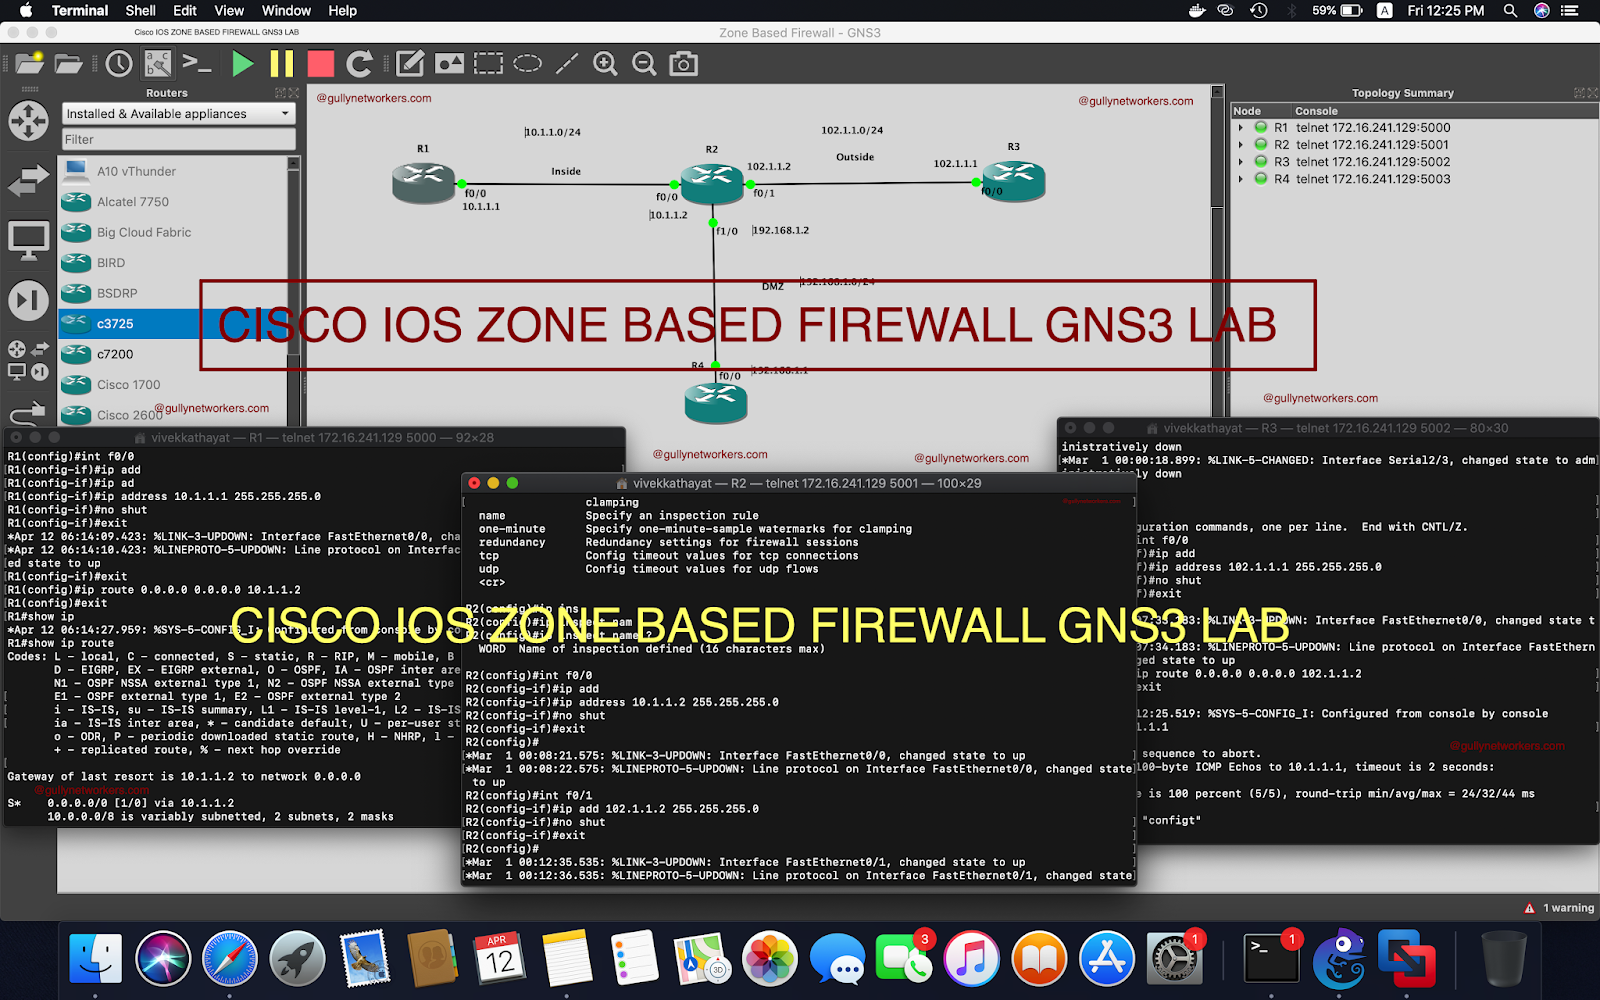 gullynetworkers: CISCO IOS ZONE BASED FIREWALL GNS3 LAB